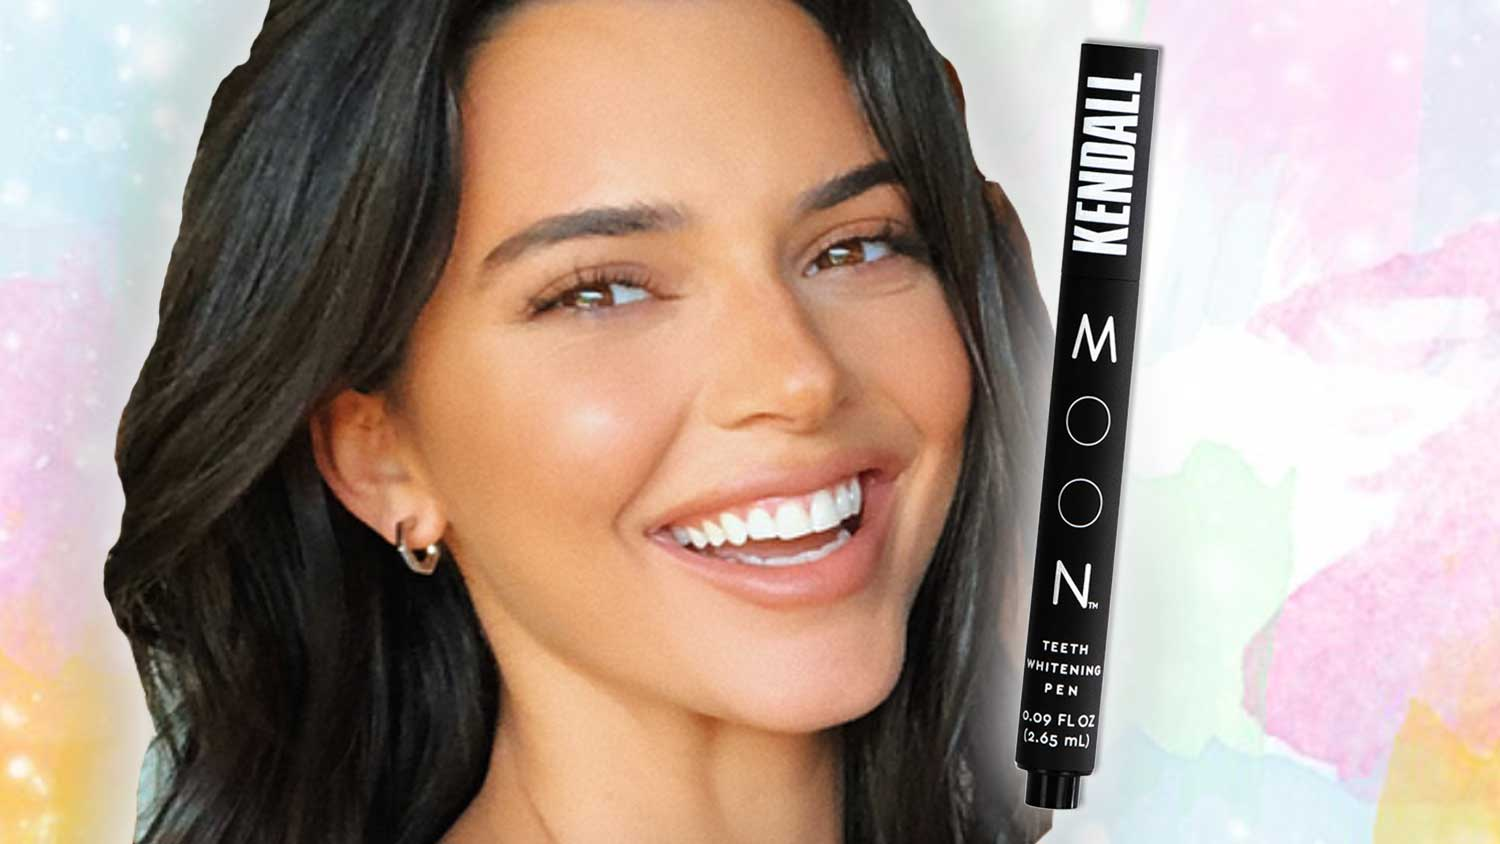 Kendall Jenner Is Launching A Vegan Instant Teeth Whitener